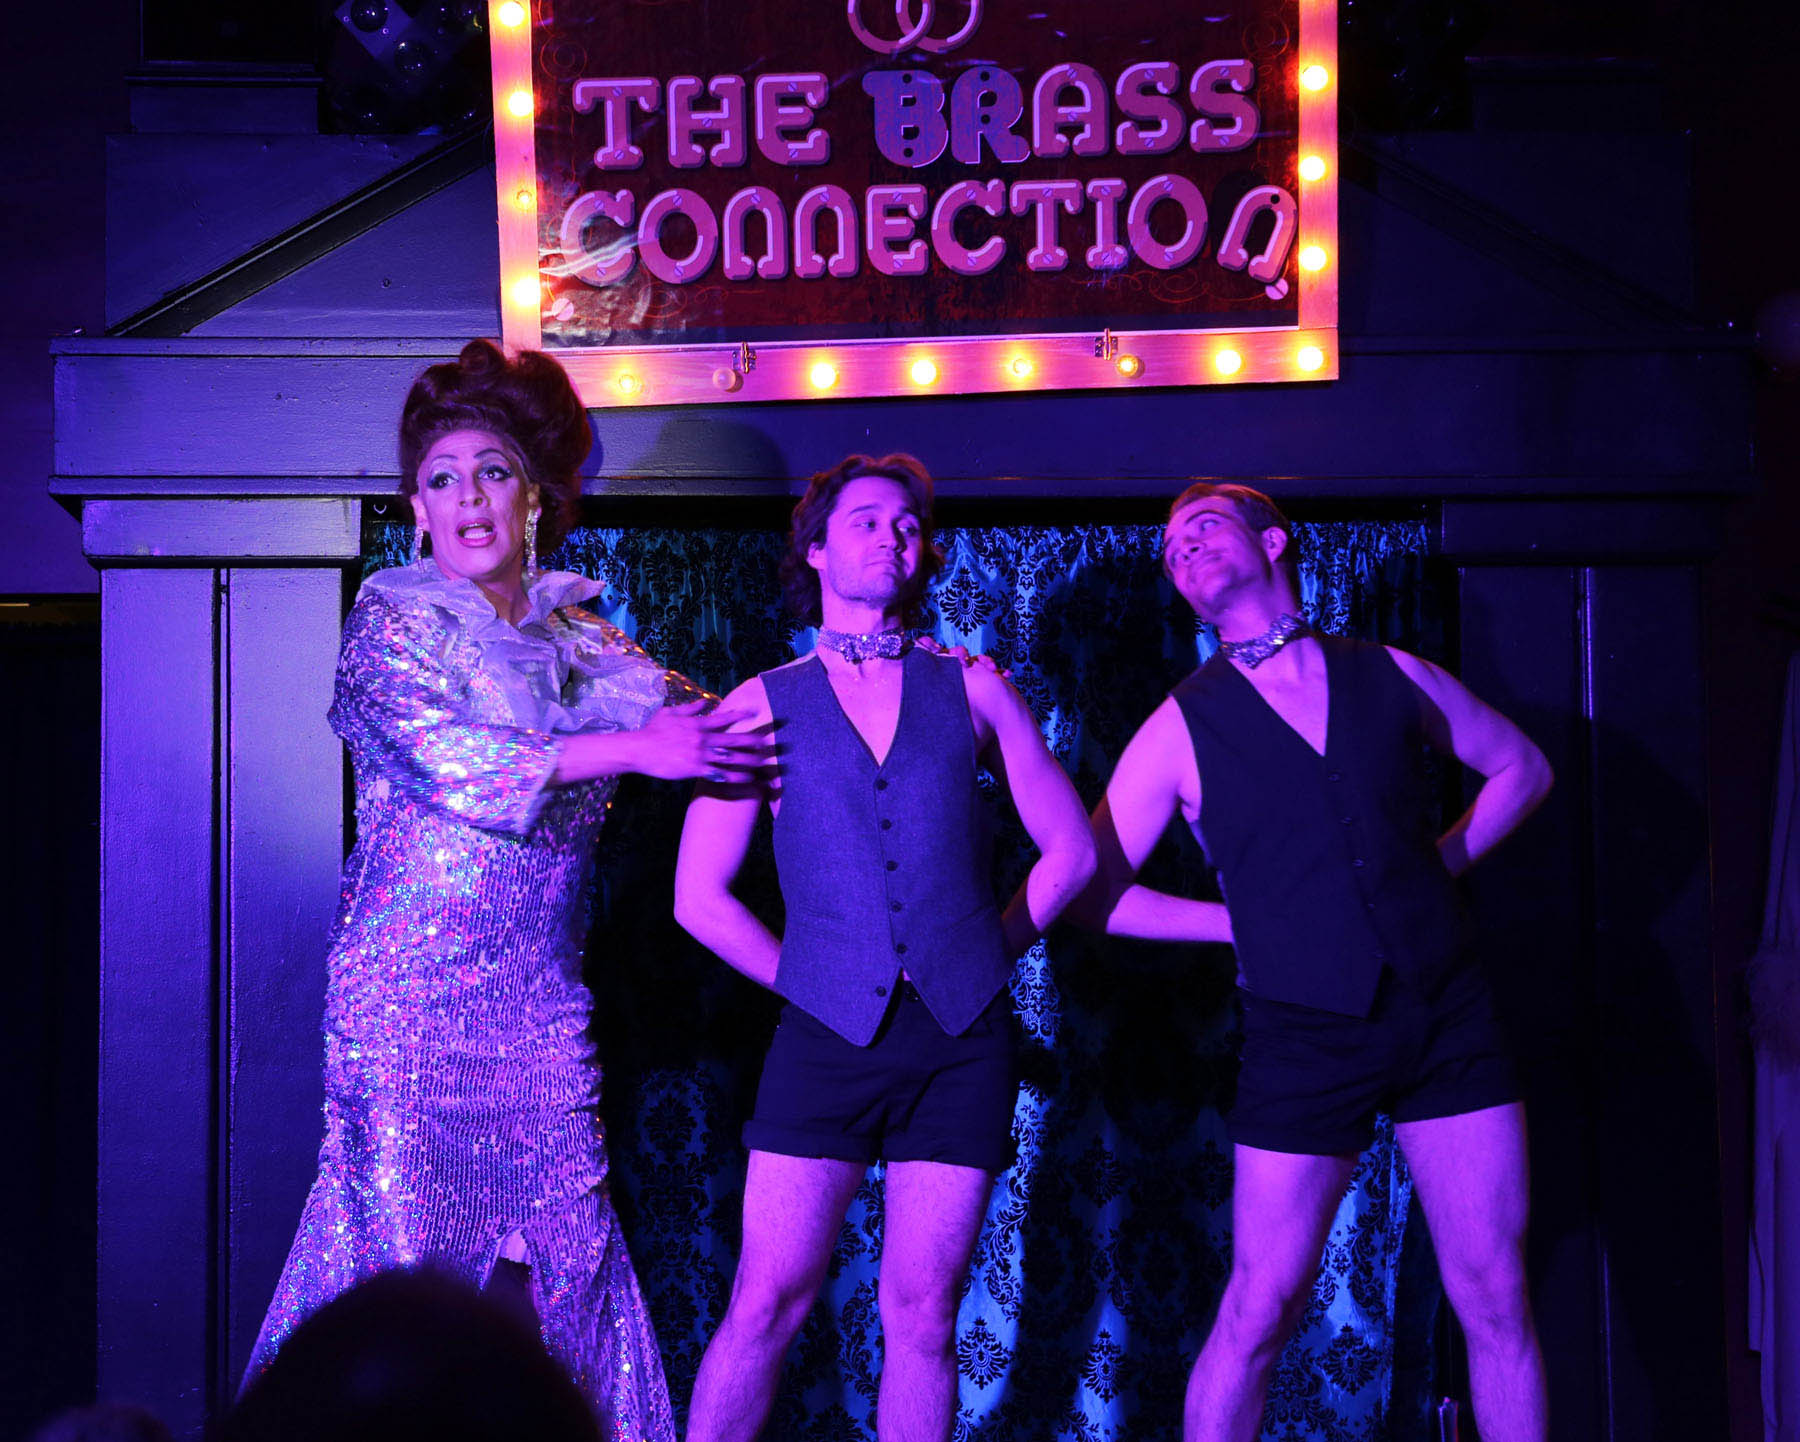 theater review miracle hell in a handbag productions at mary s crystal pain takes the stage david cerda as drag diva crystal pain performs